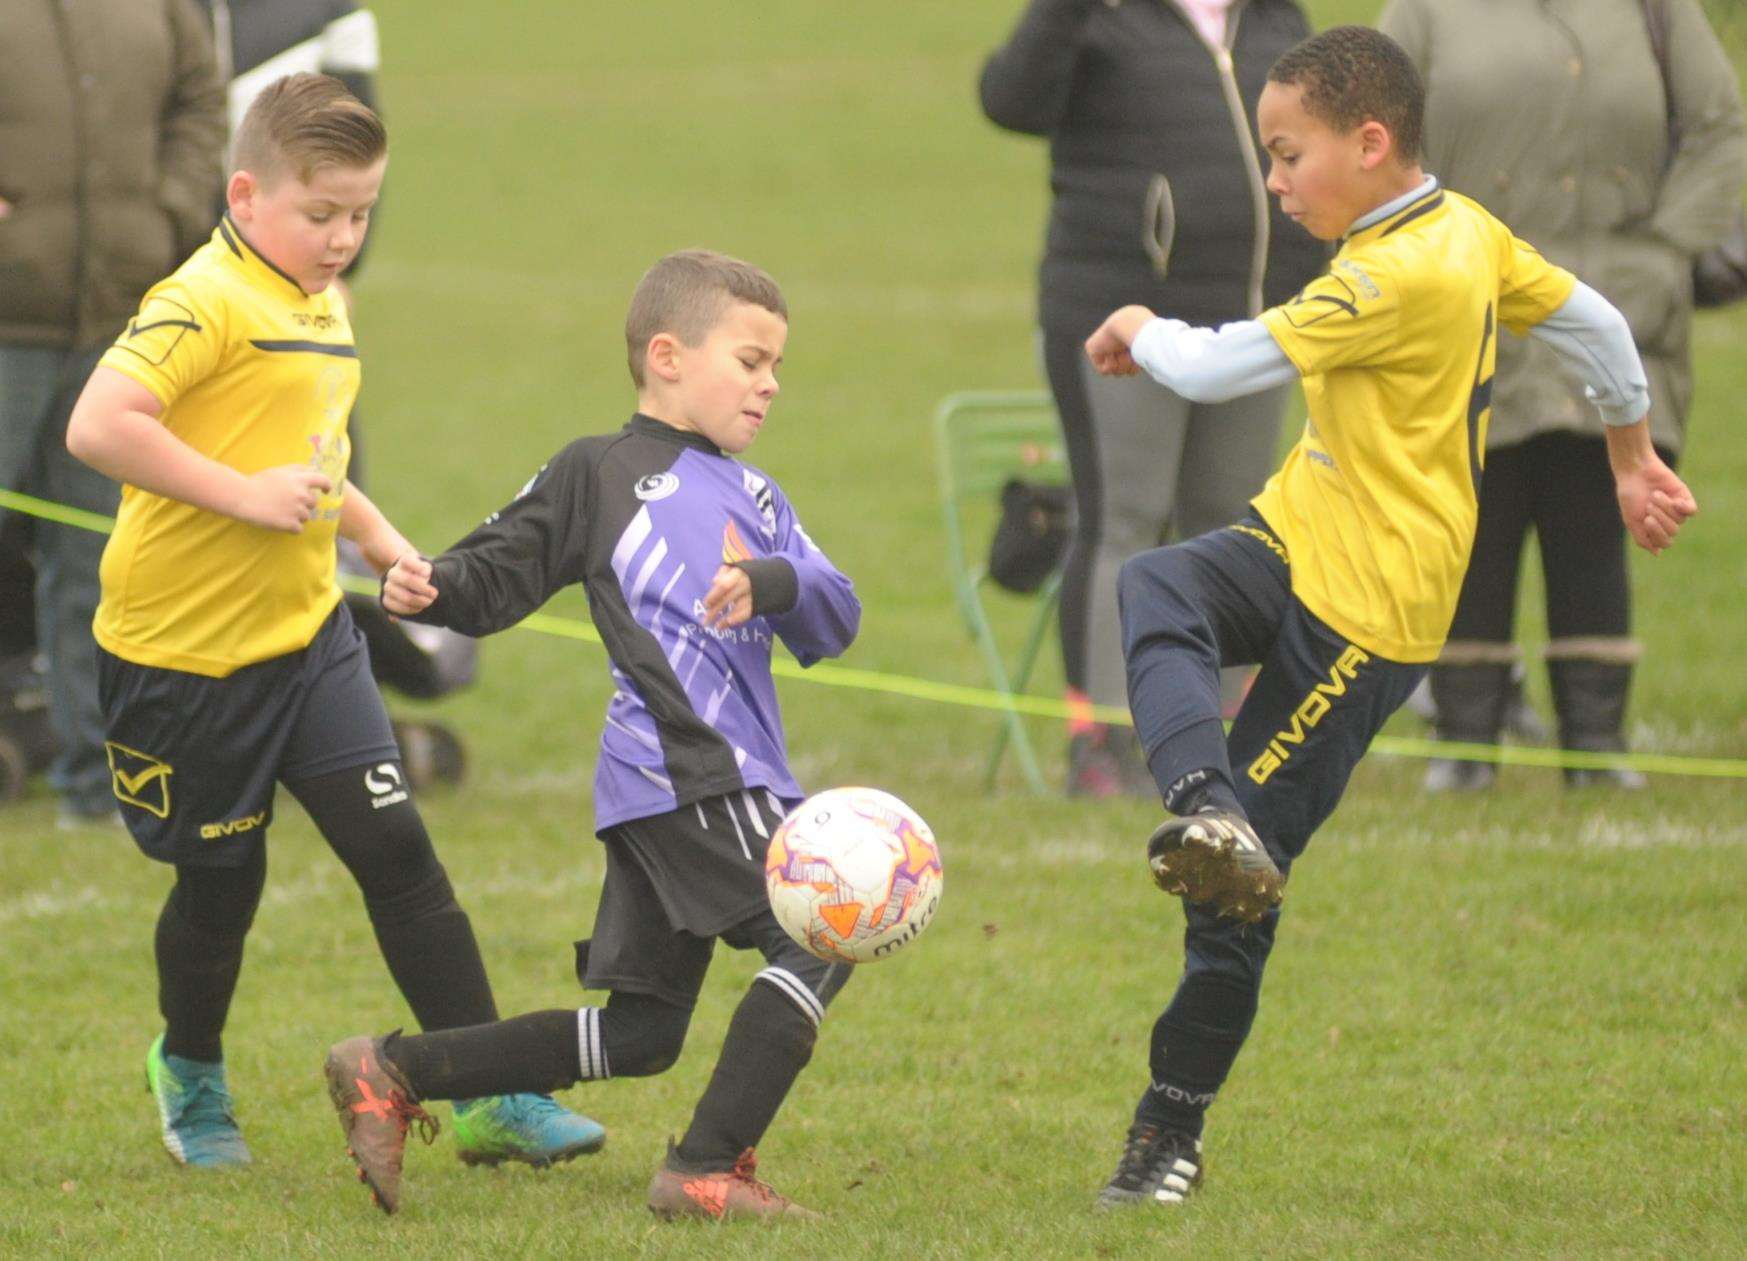 Anchorians Jaguars under-9s (purple) and Sheerness East Youth fight for the ball Picture: Steve Crispe